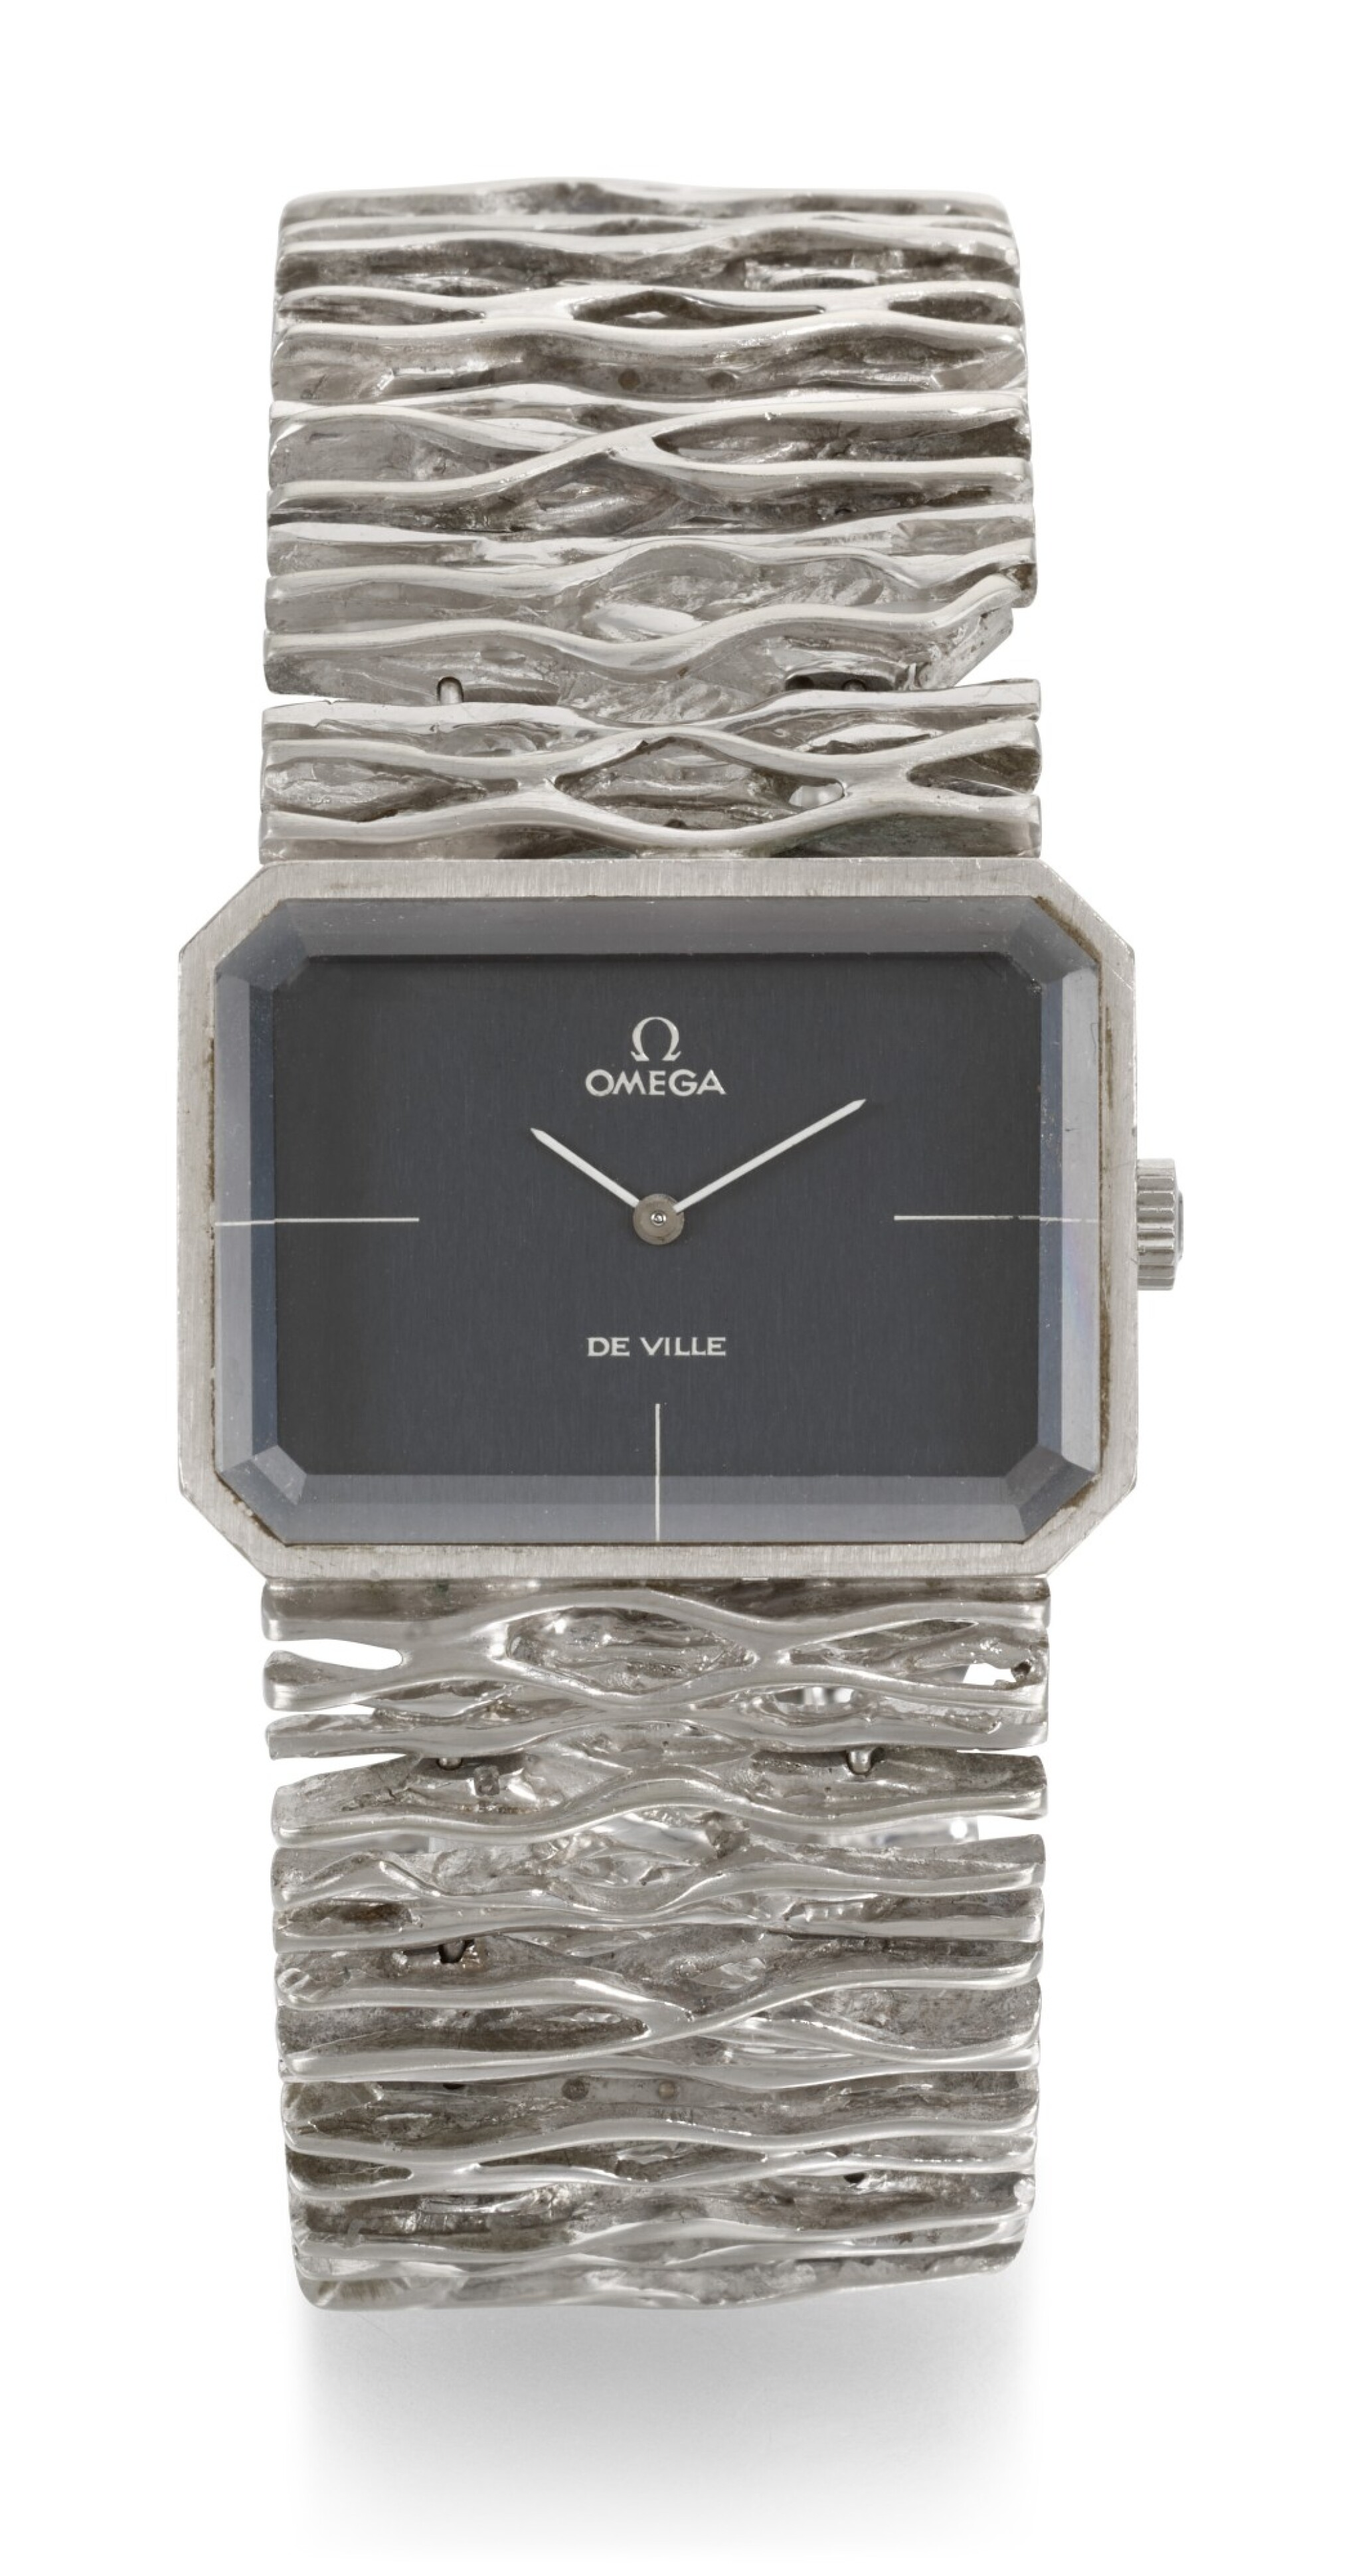 View full screen - View 1 of Lot 1205. OMEGA | DE VILLE JEUX D'OR, REFERENCE 8272, WHITE GOLD RECTANGULAR BRACELET WATCH CIRCA 1973.